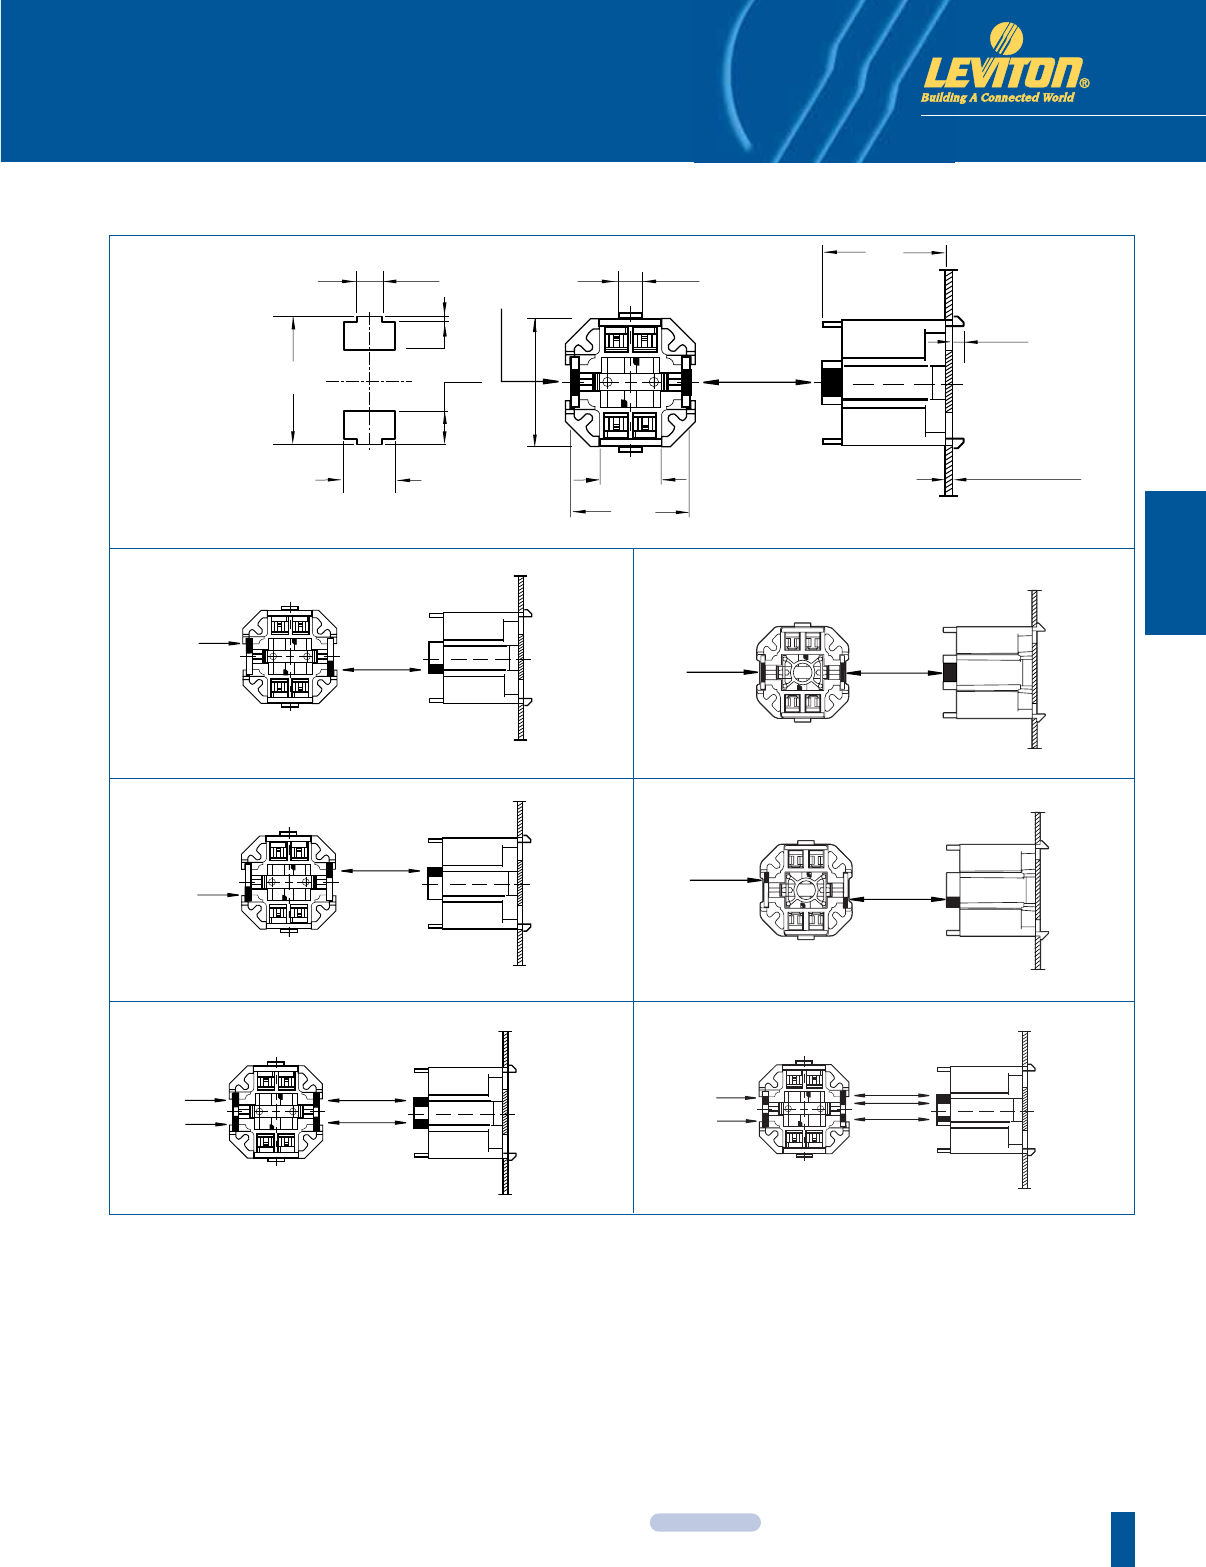 Brochure Leviton Nom 057 Switch Wiring Diagram For Answers To Technical Questions Call Levitons Techline At 1 800 824 3005